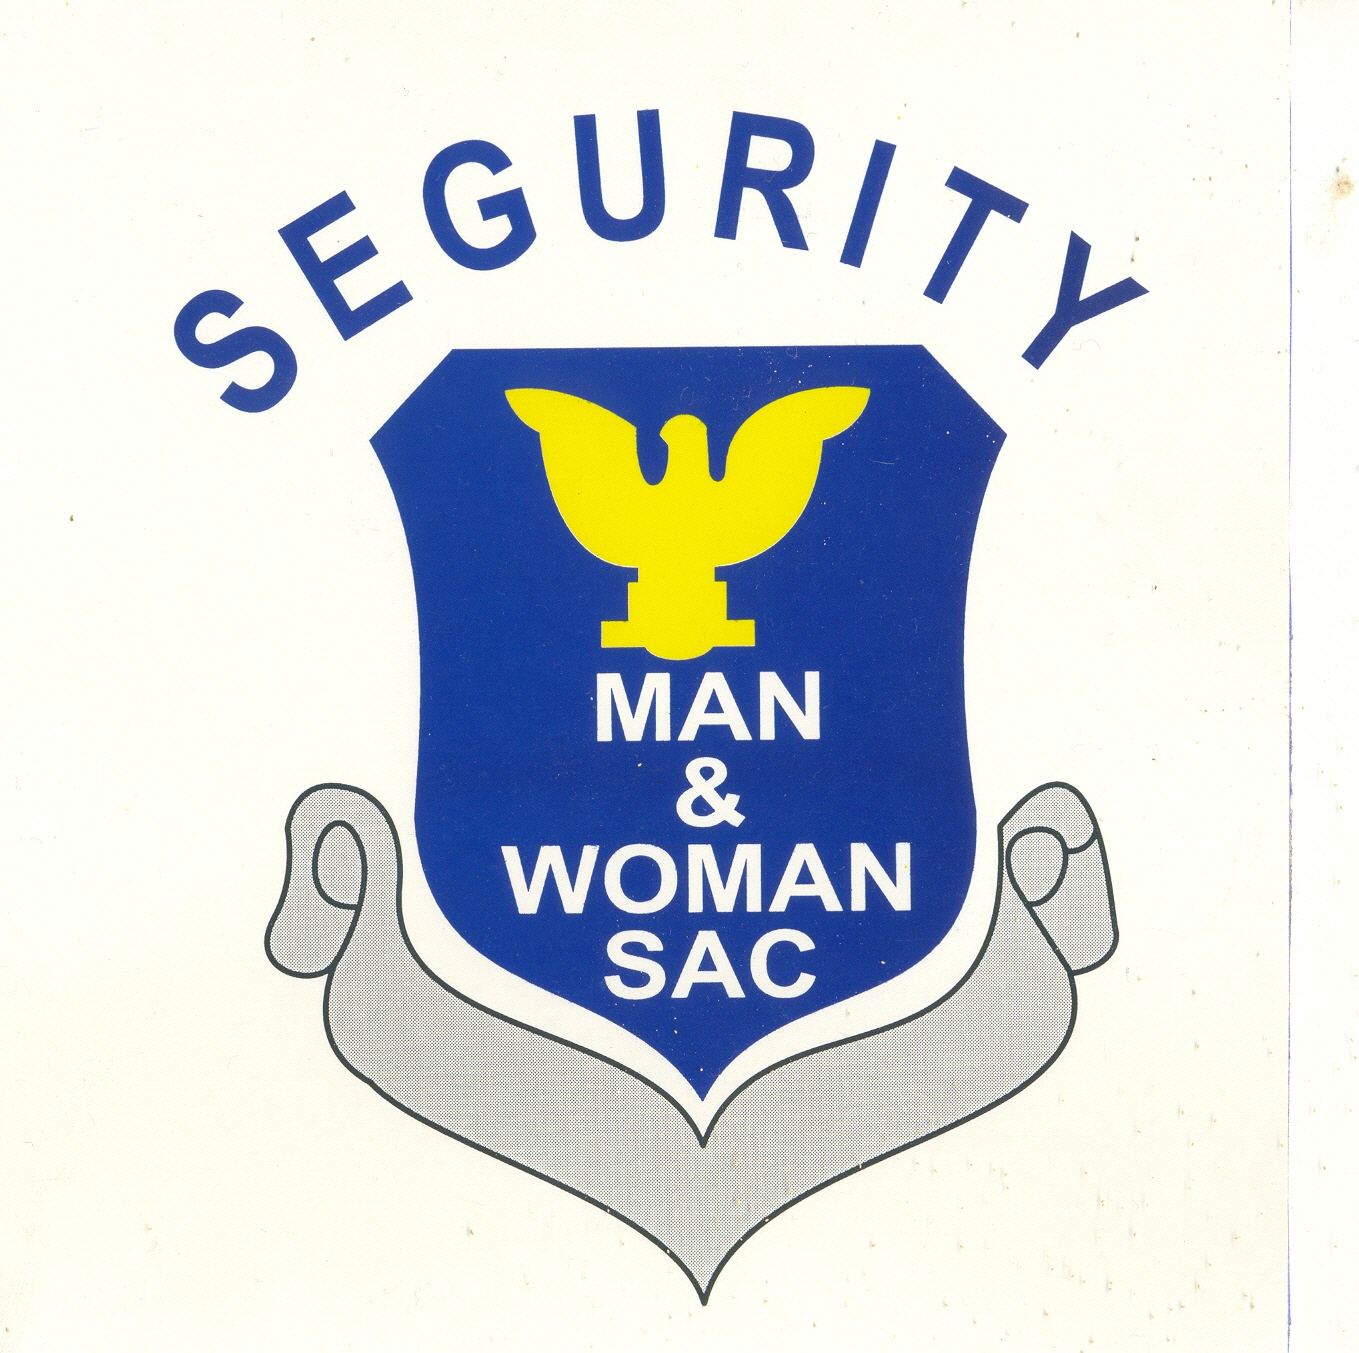 Segurity Man & Woman S.A.C